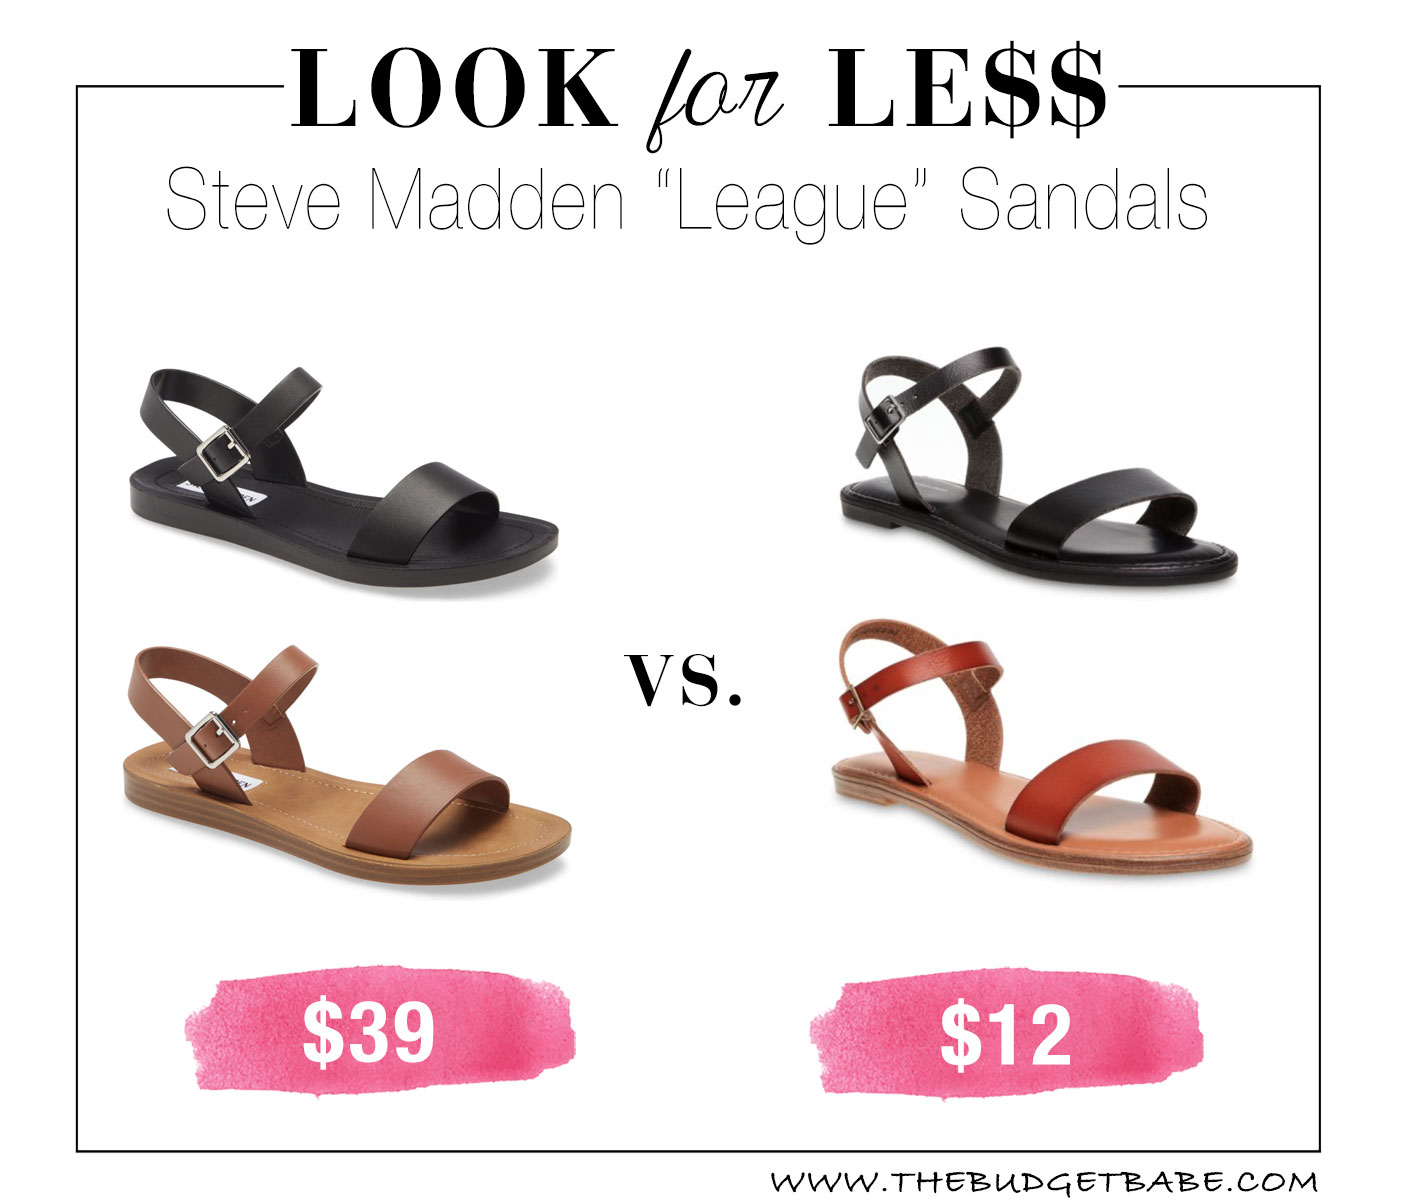 Steve Madden The Budget Babe Affordable Fashion Style Blog